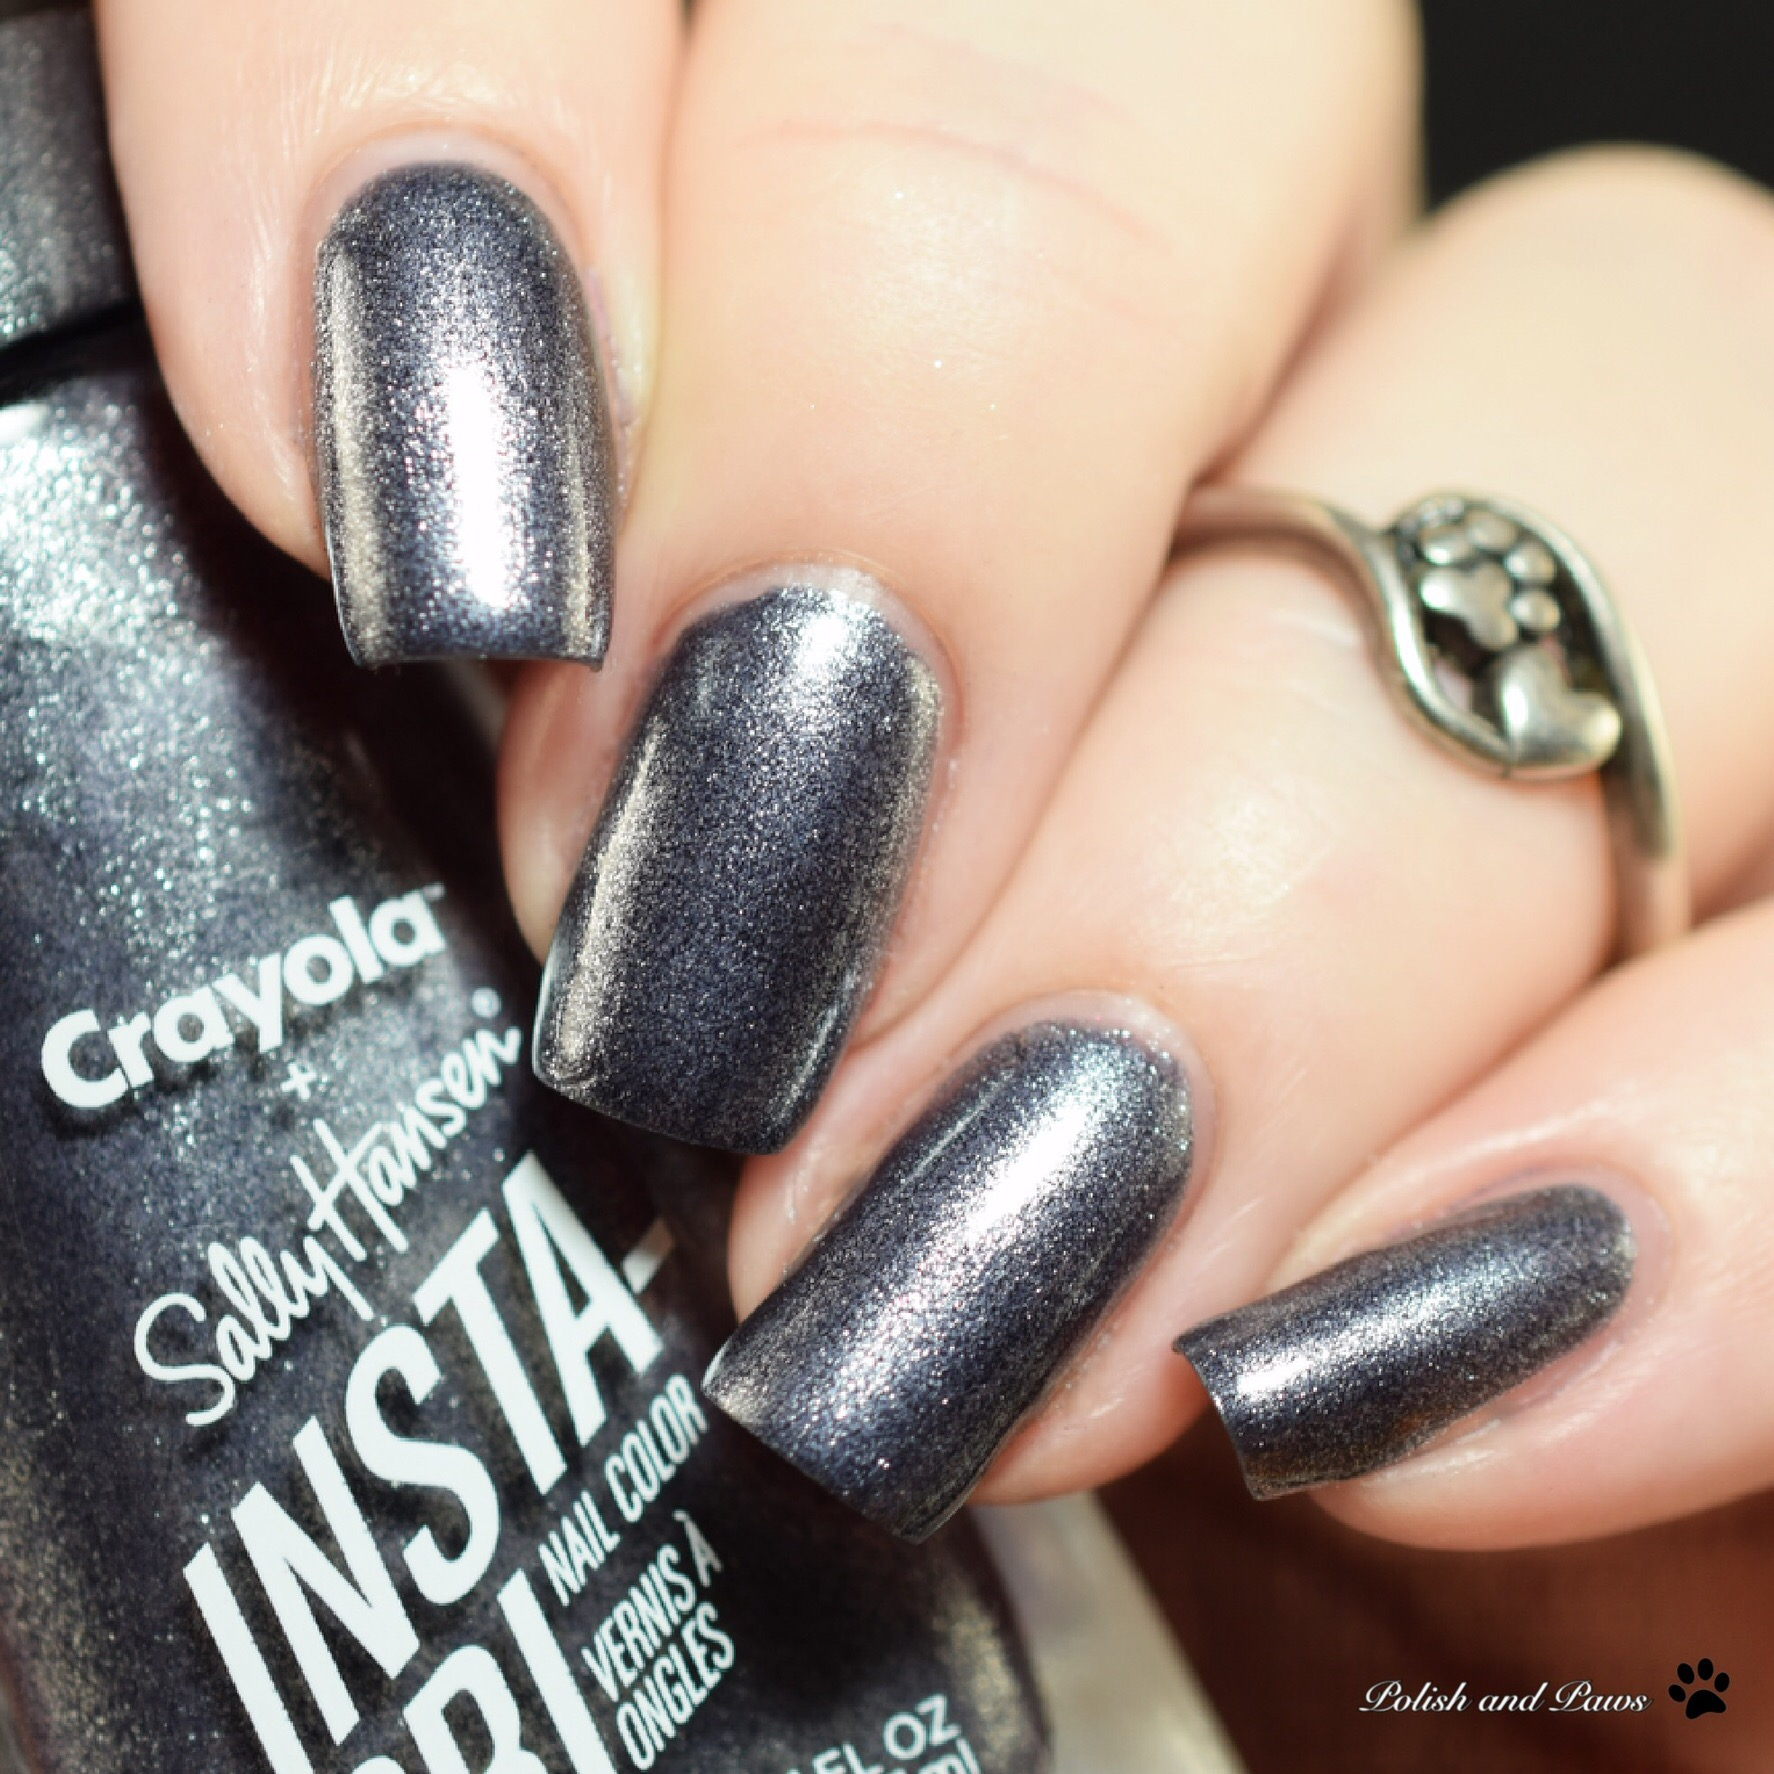 Sally Hansen Crayola Deep Space Sparkle